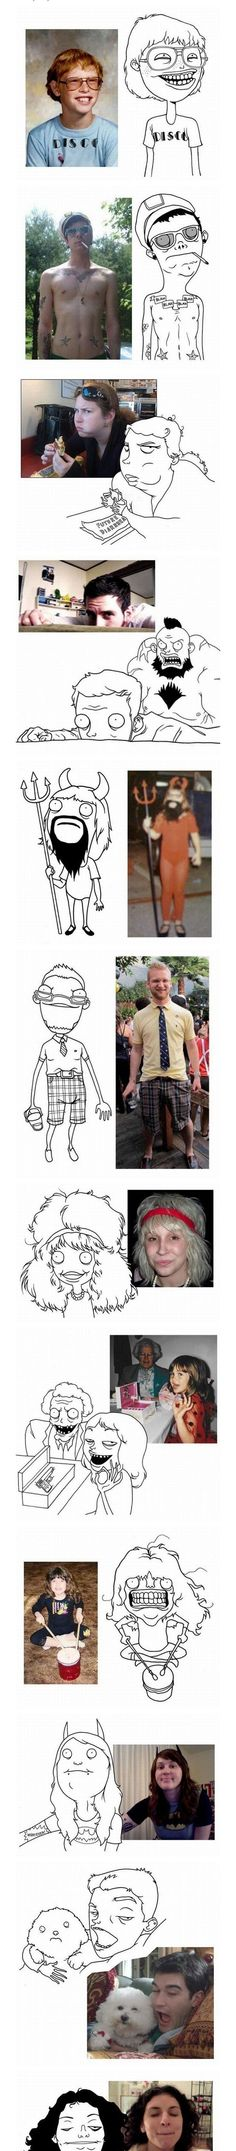 Funny Caricatures Of Facebook Users